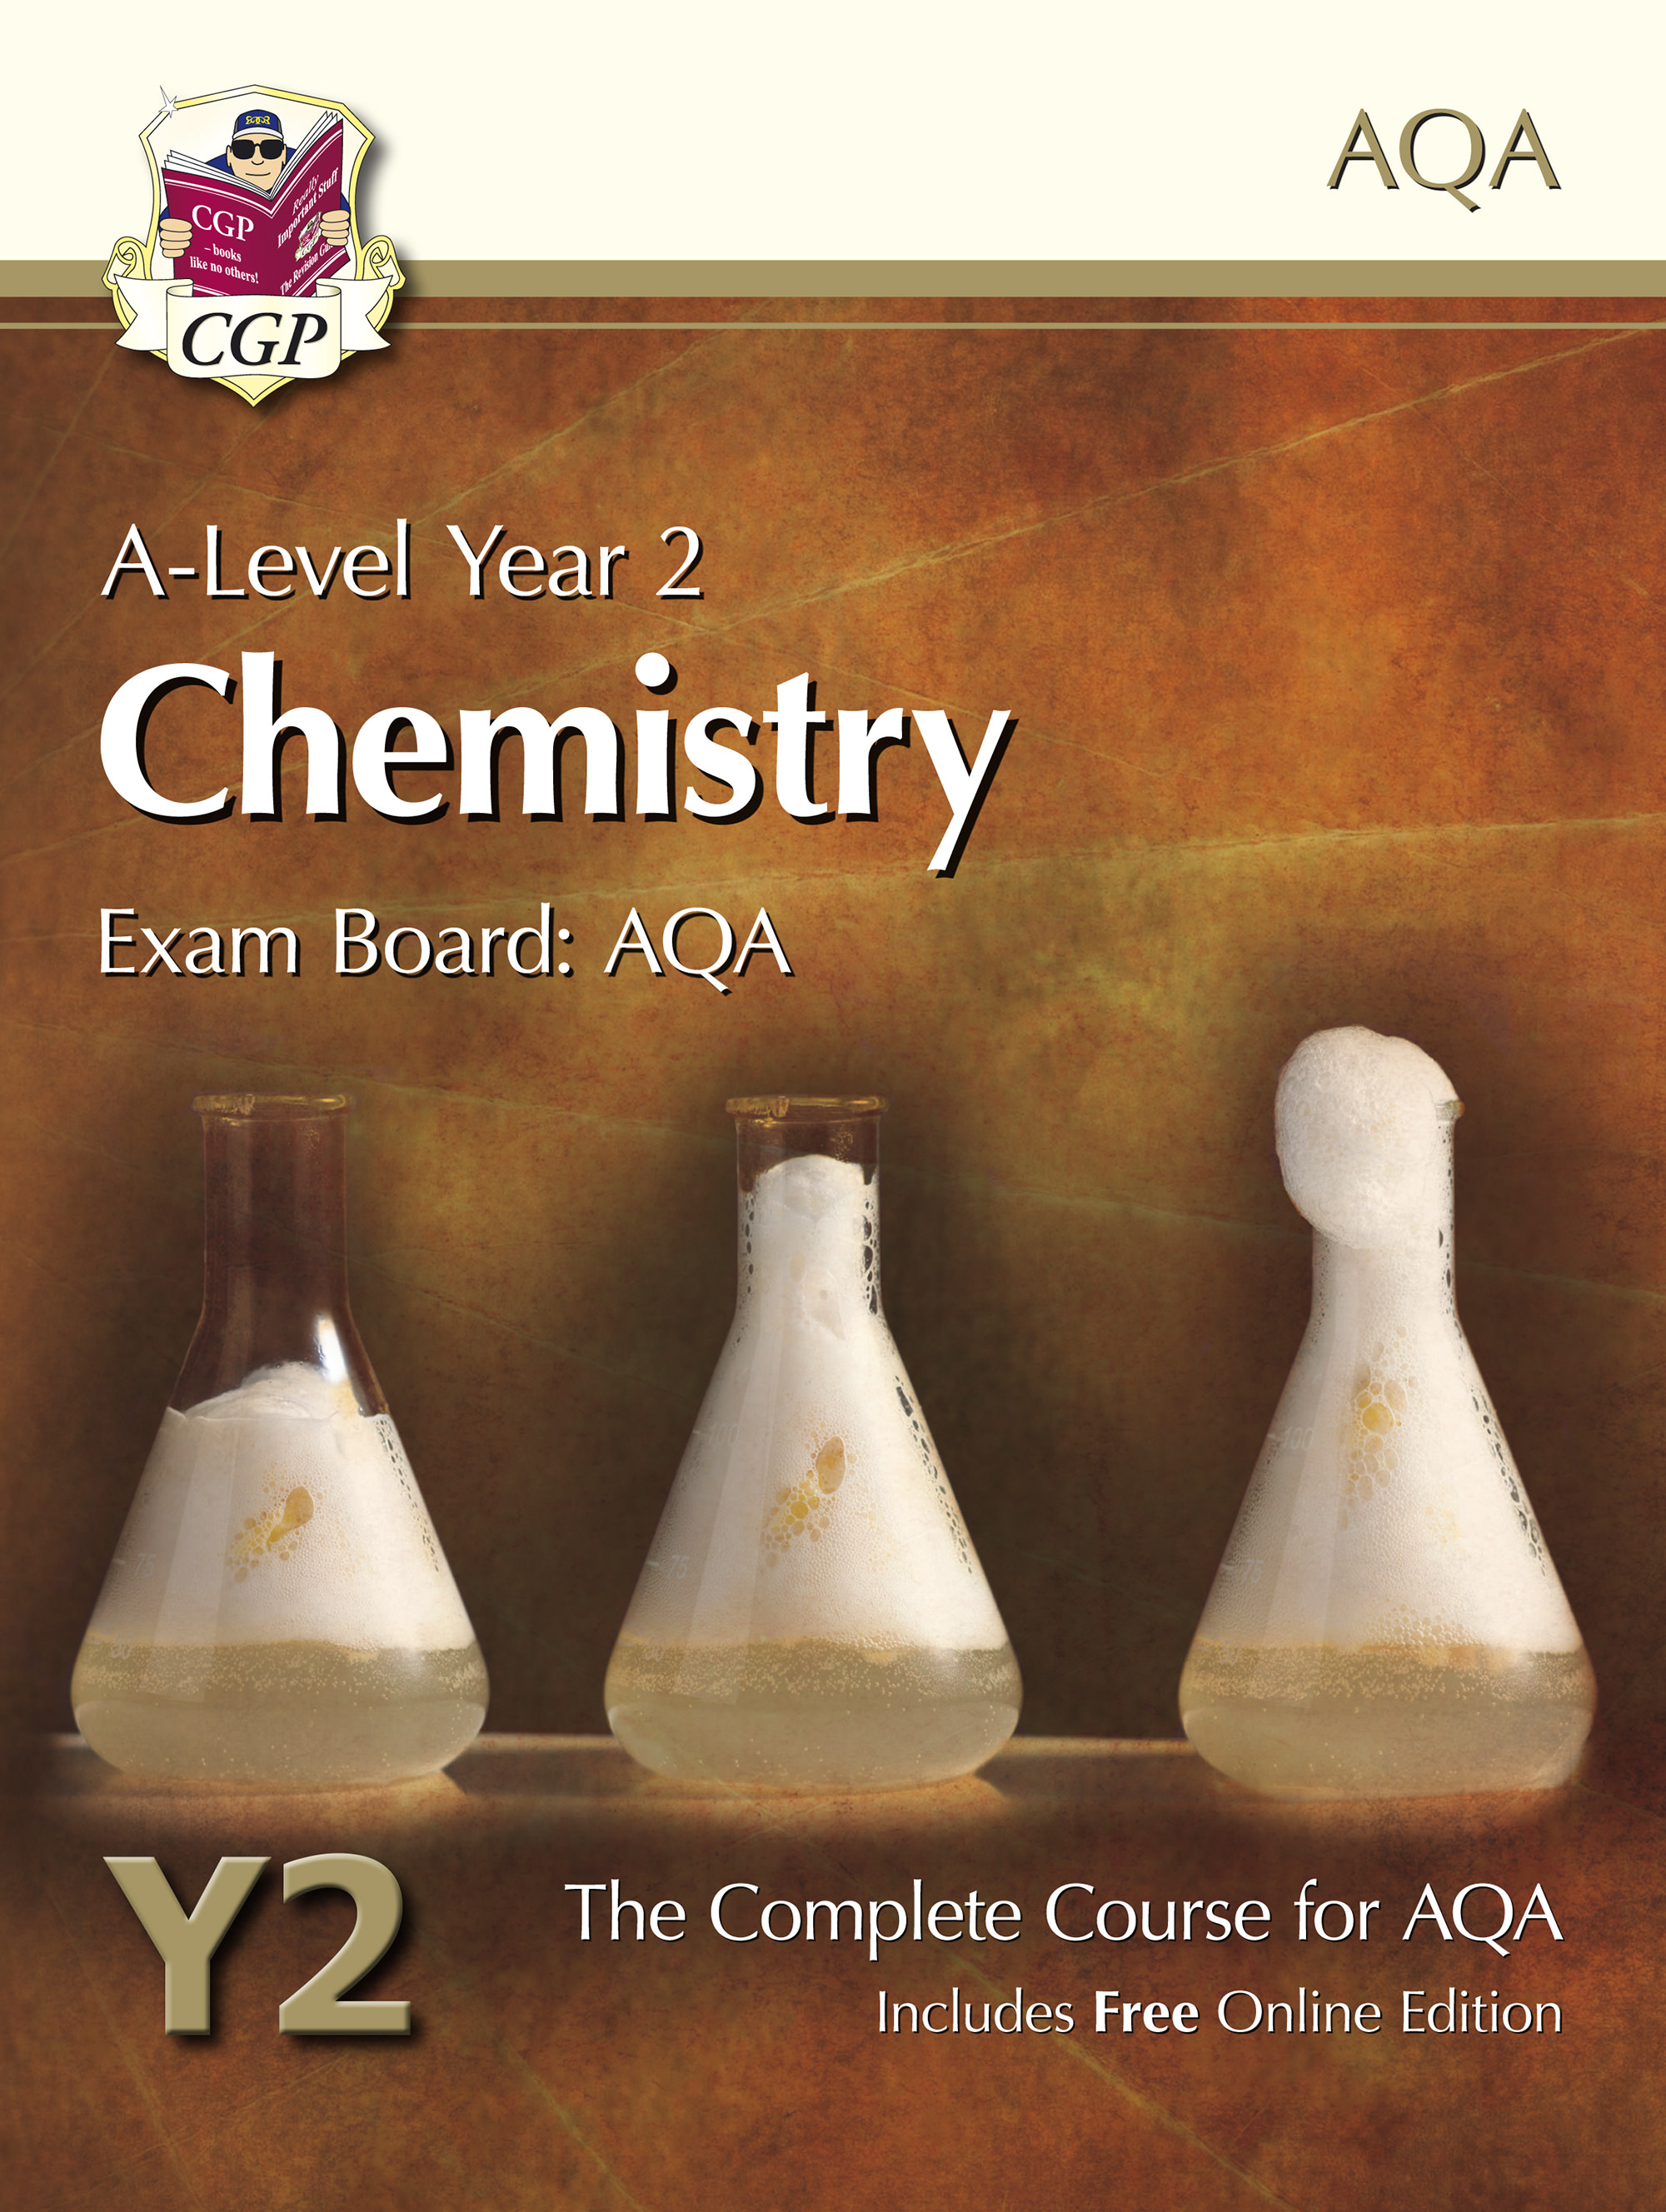 CATB62 - A-Level Chemistry for AQA: Year 2 Student Book with Online Edition